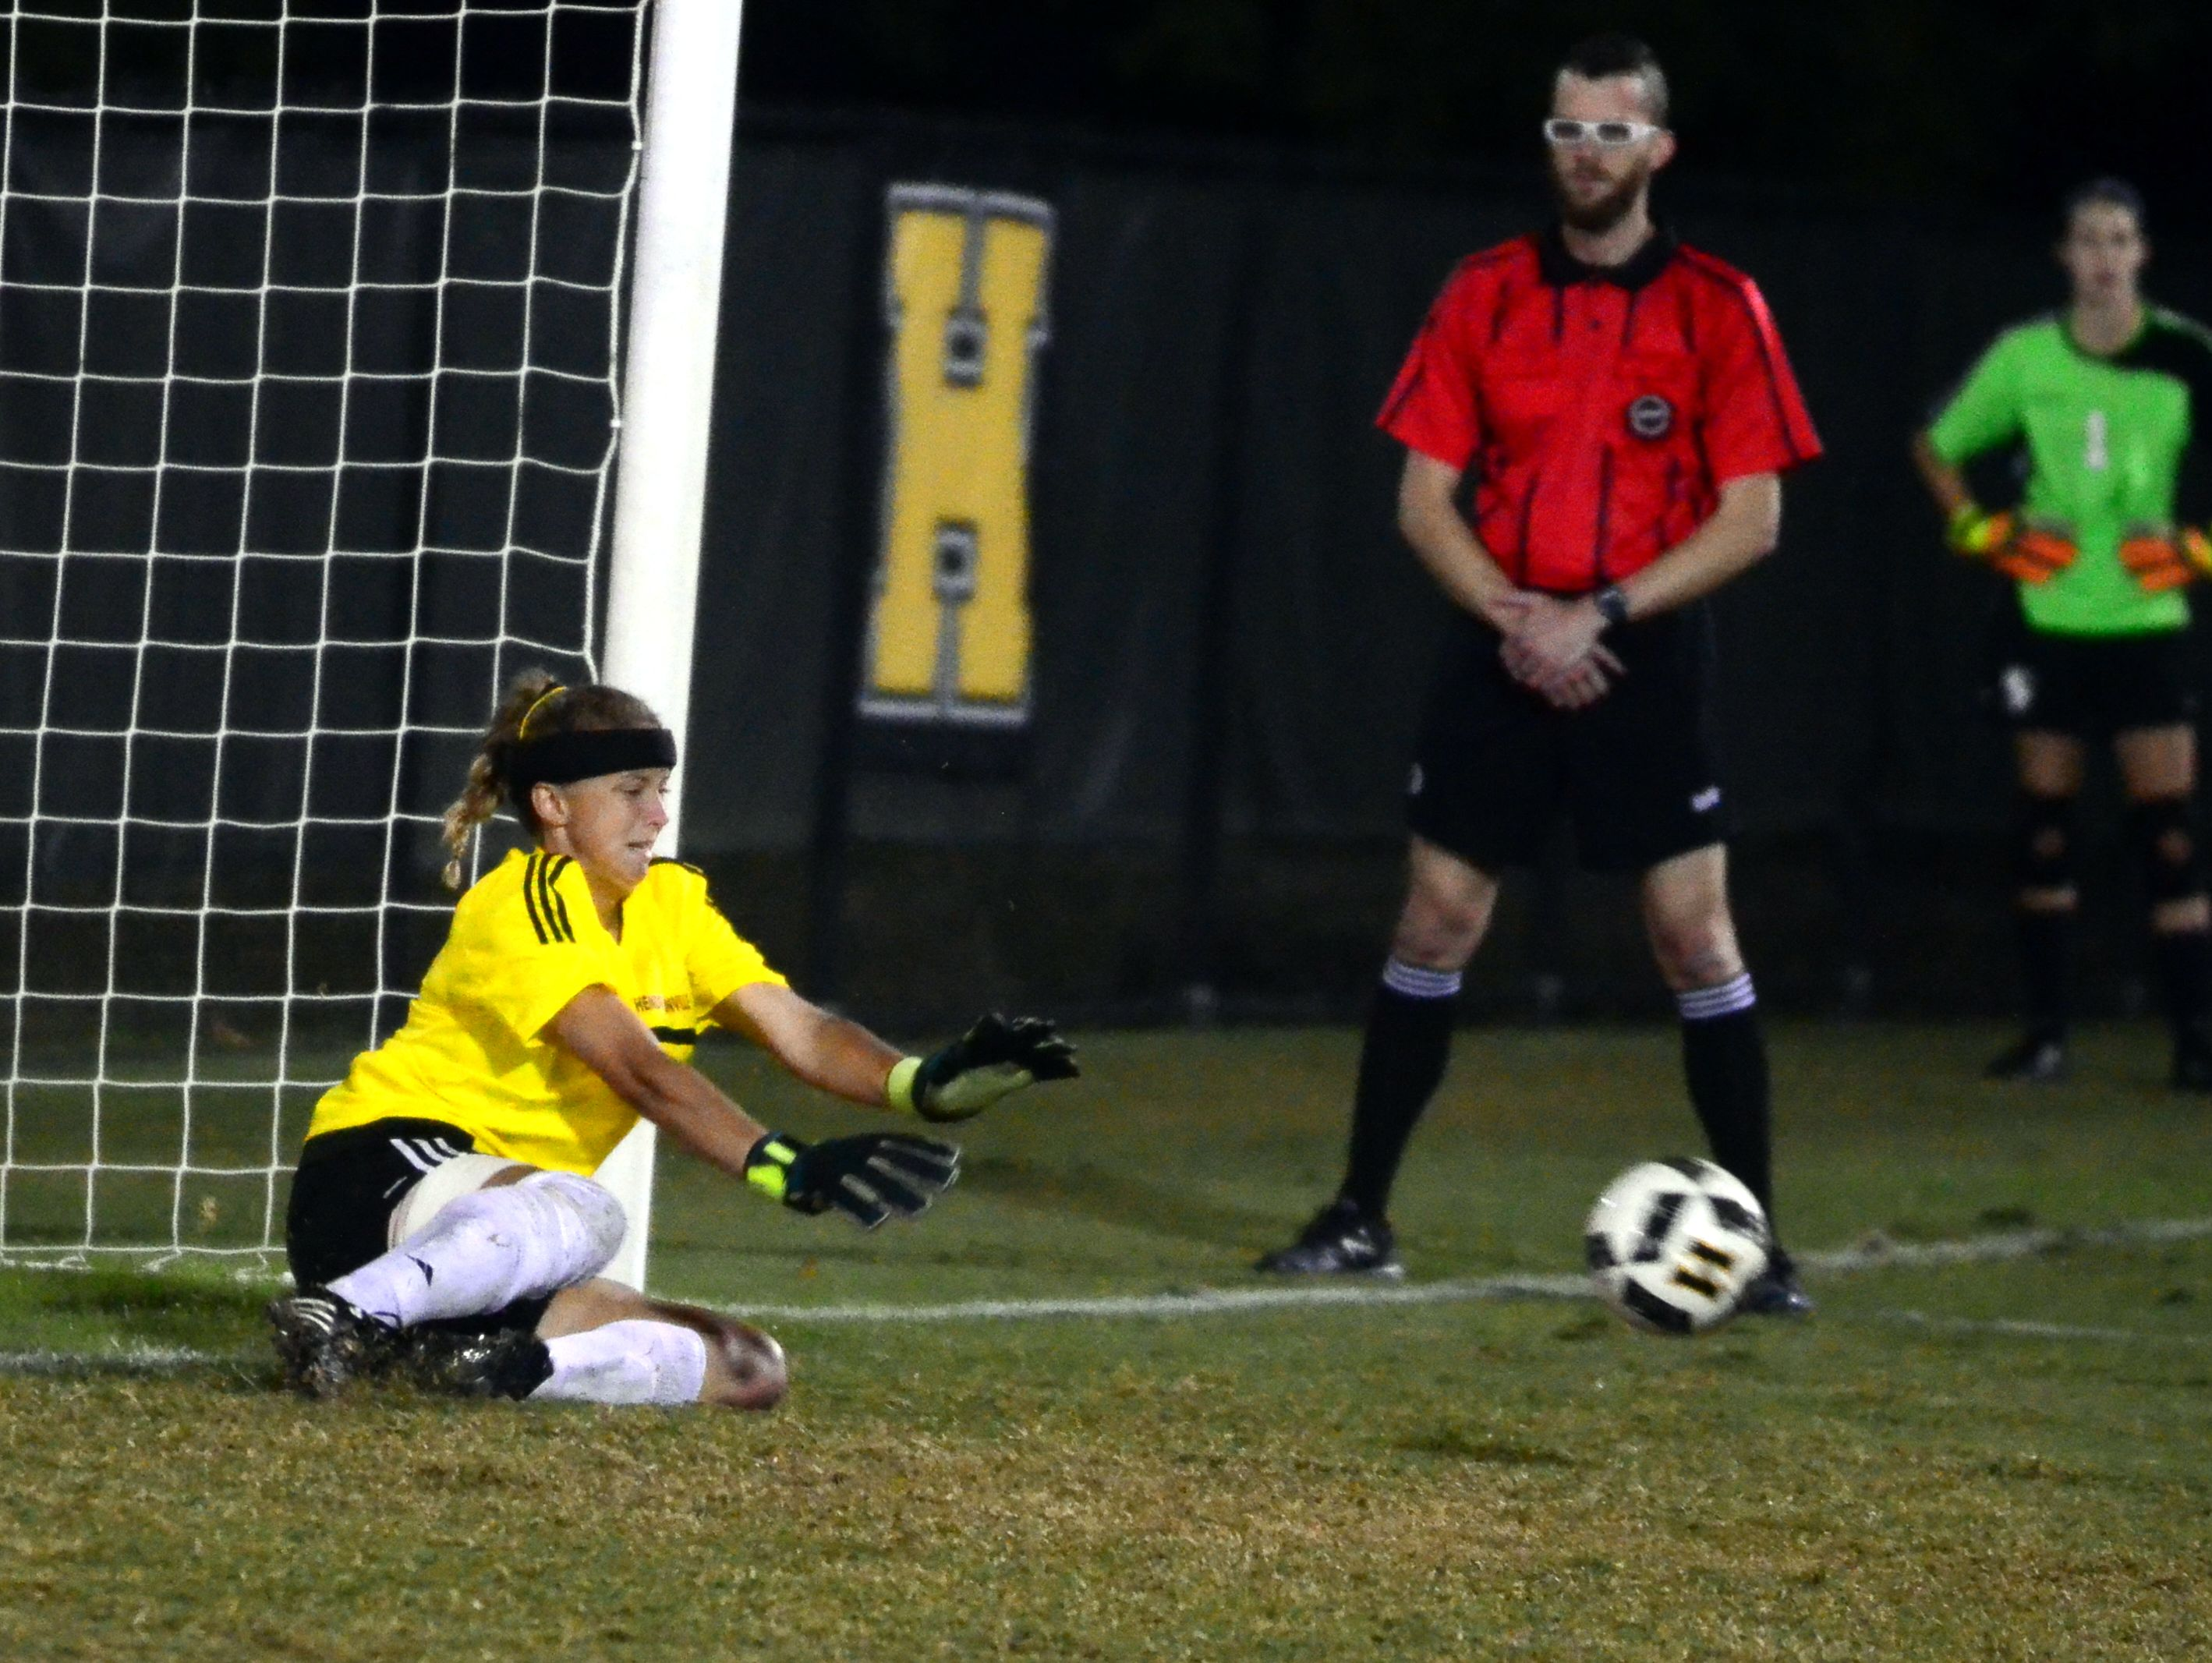 Hendersonville senior goalkeeper Makensie Cotter makes a save during the penalty-kick shootout against Station Camp.